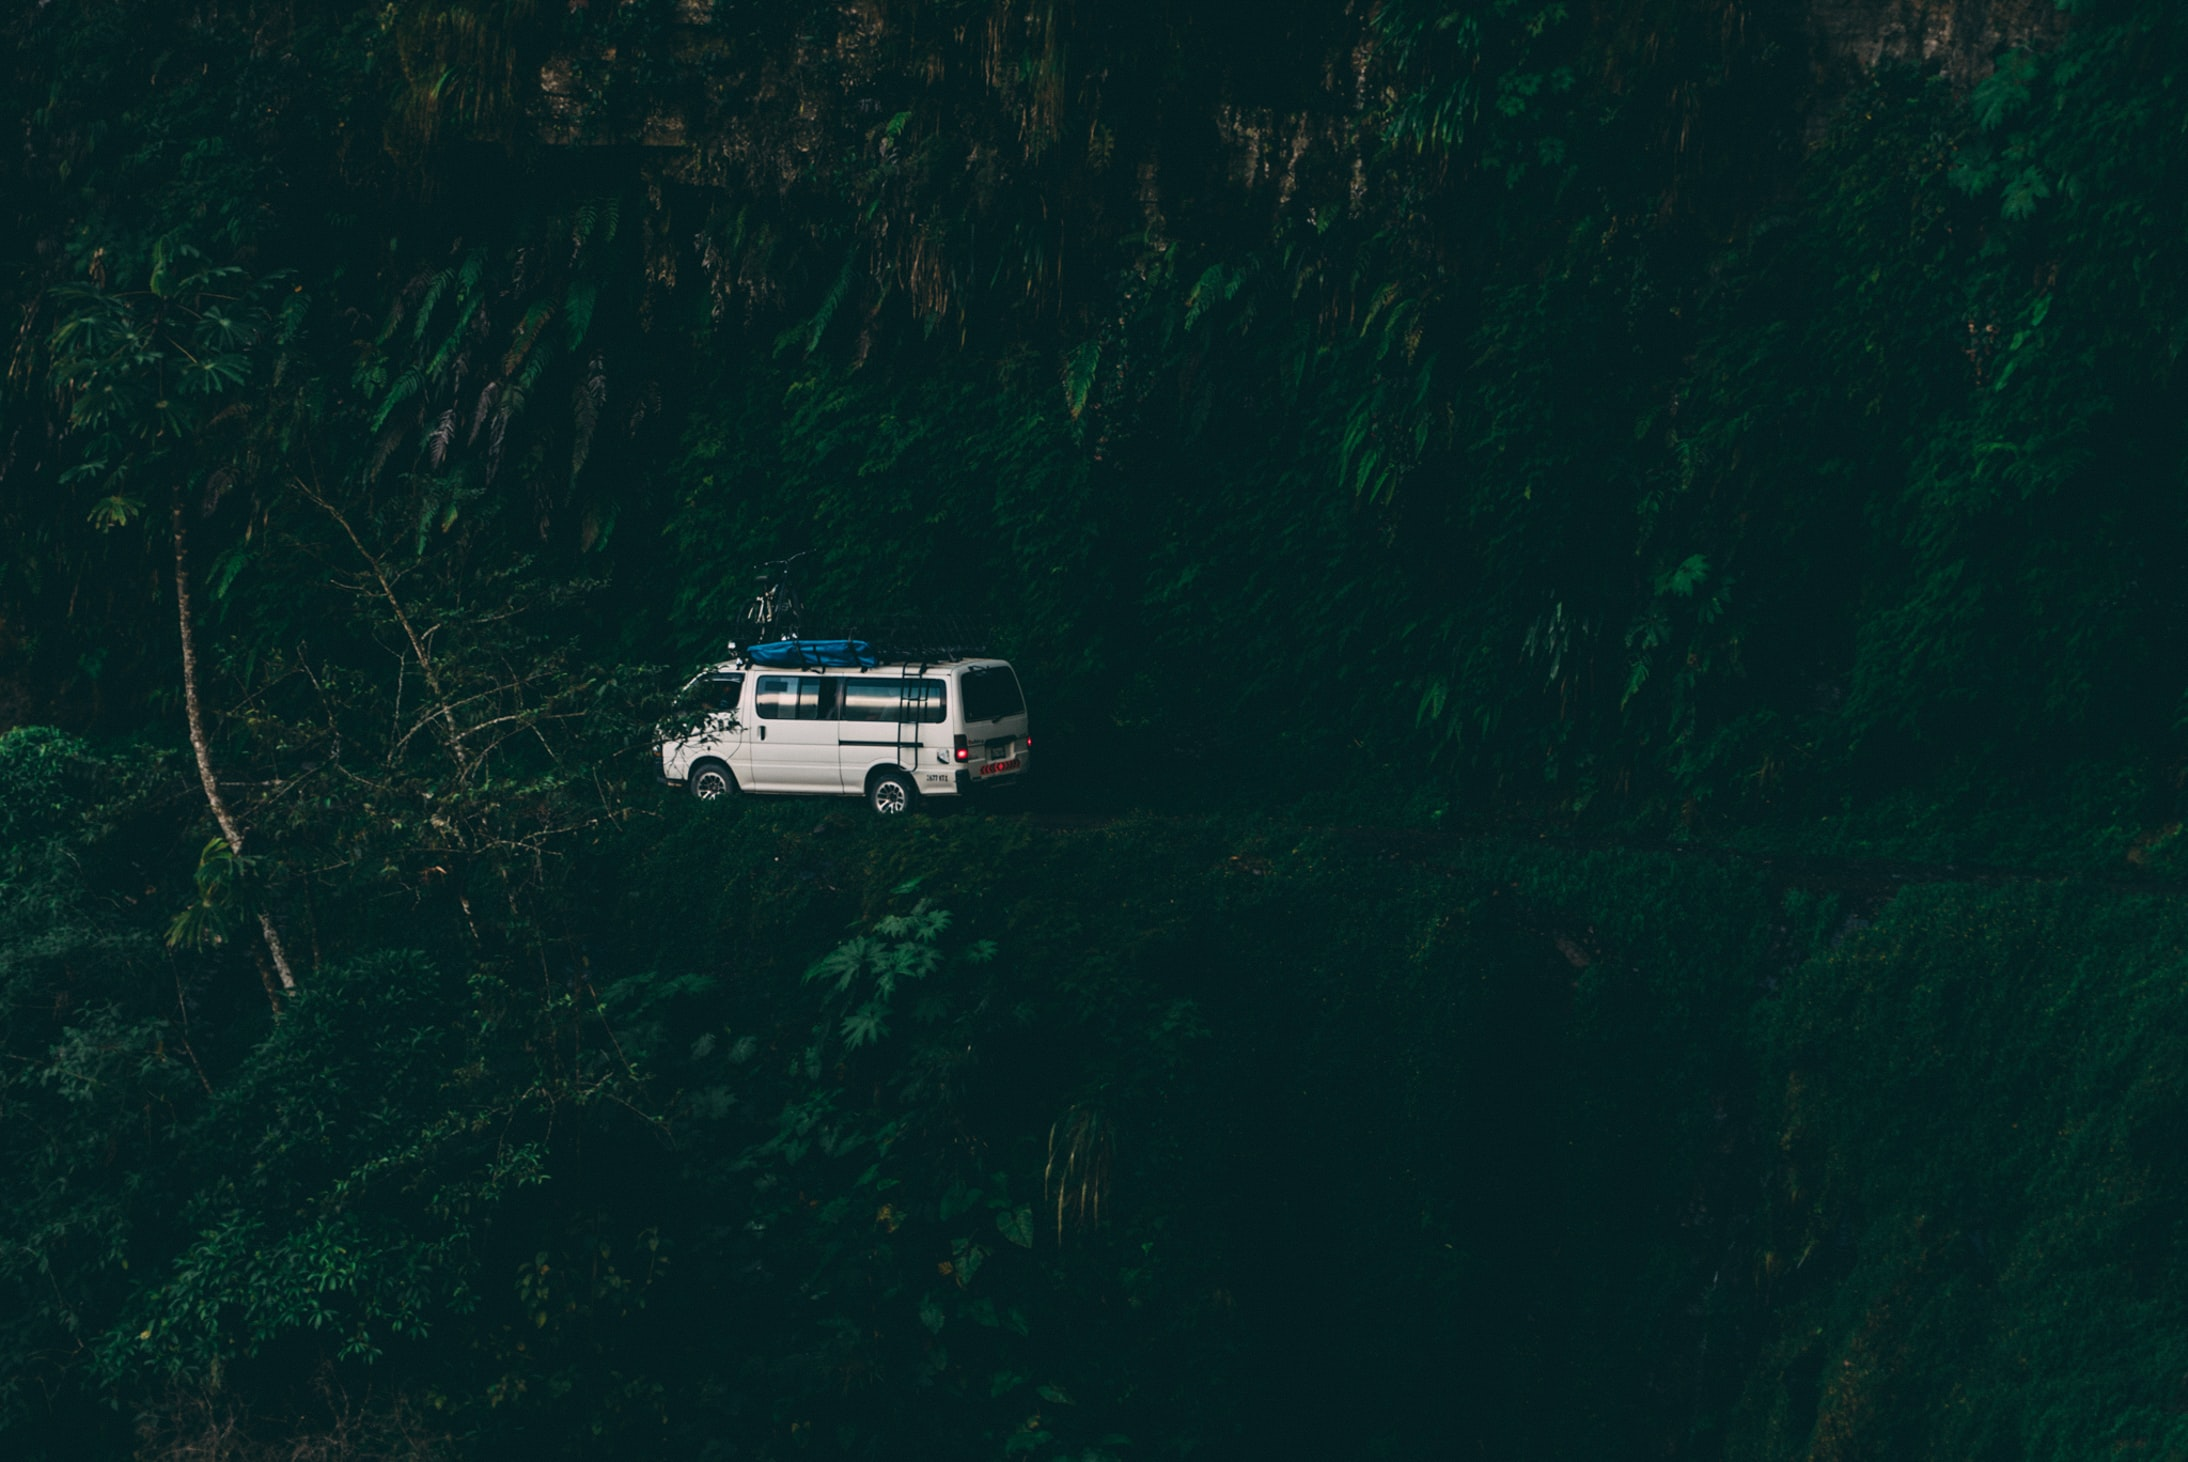 white van surrounded by trees